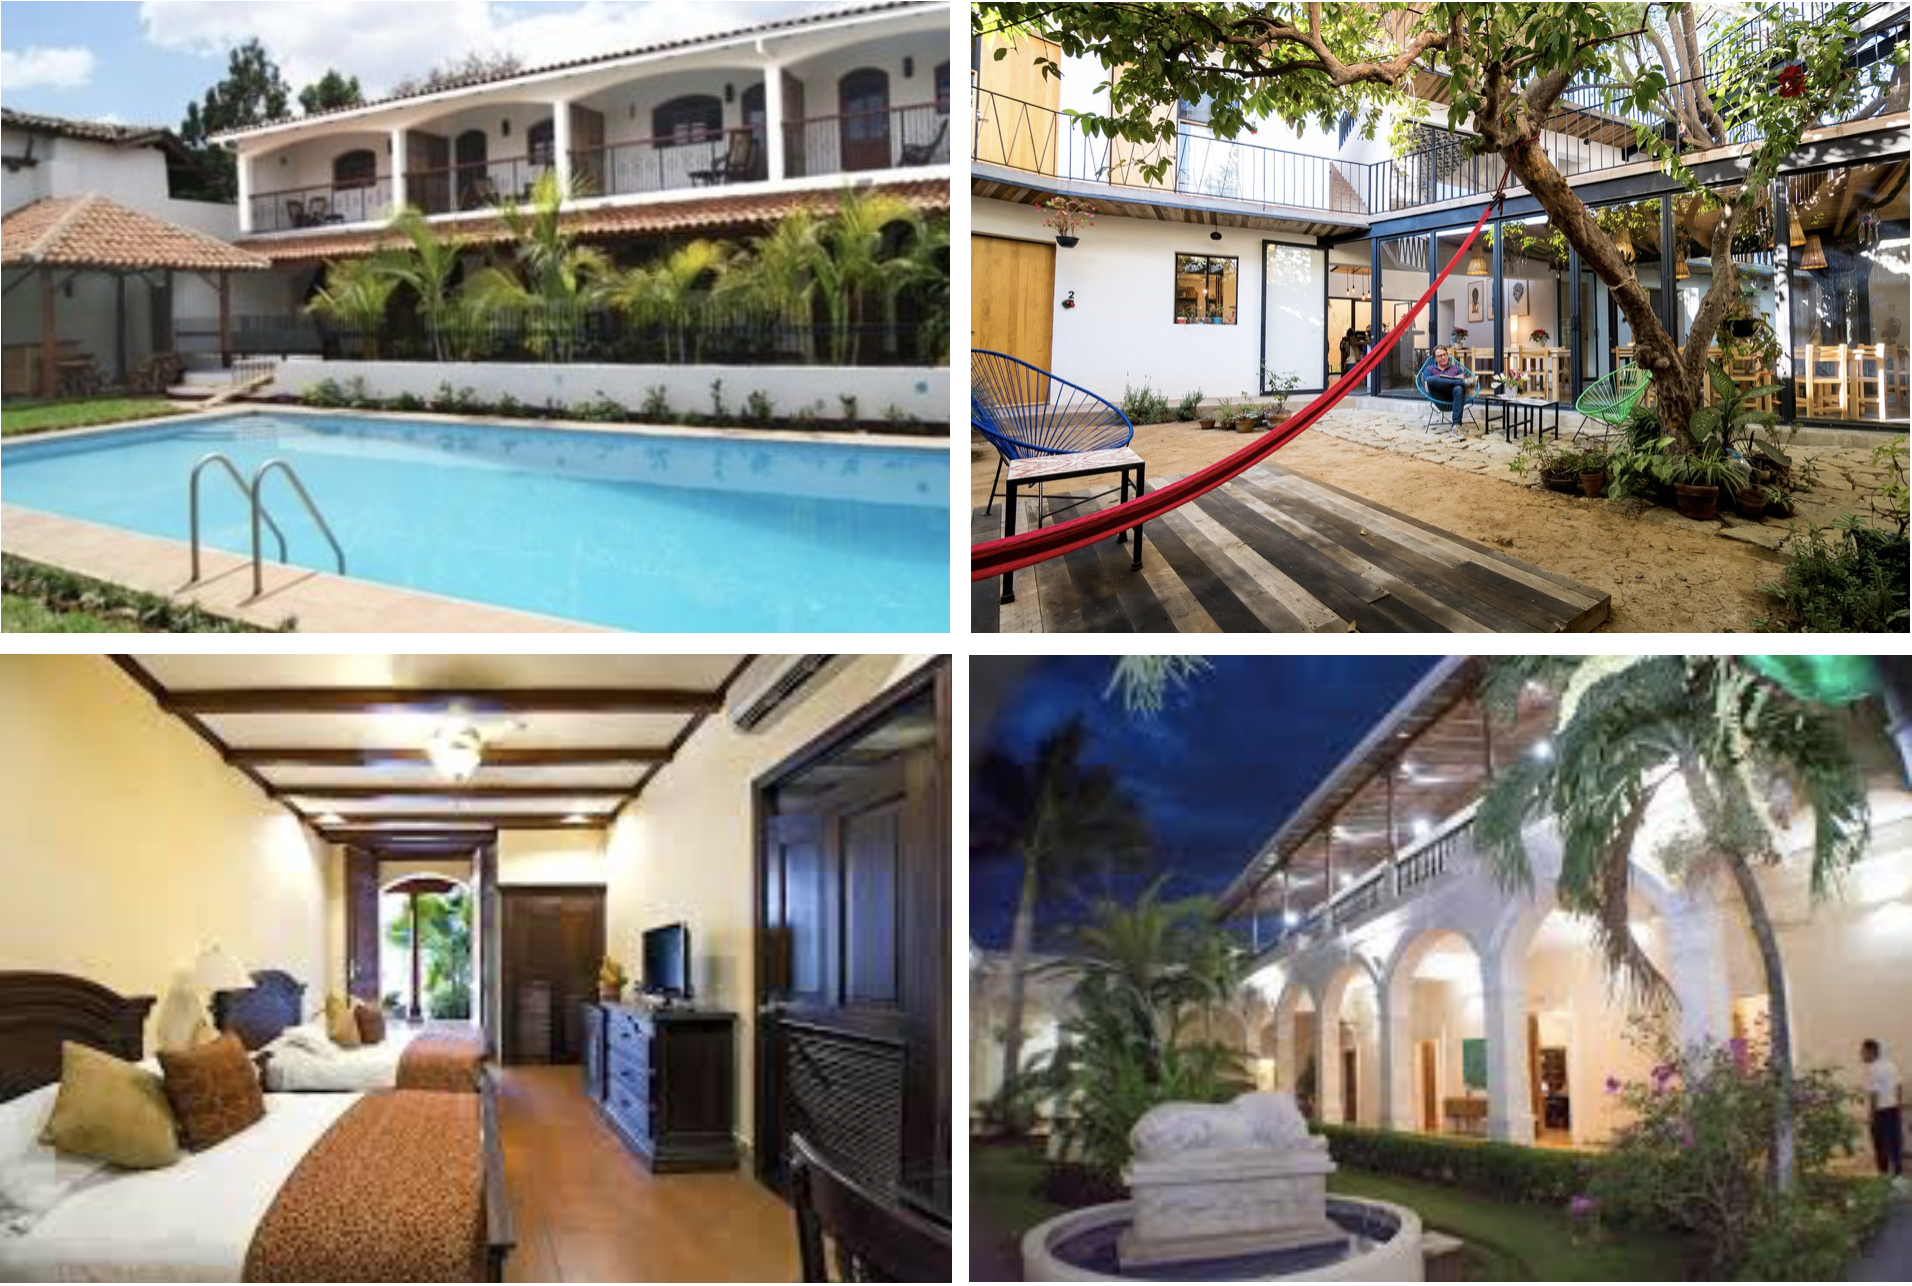 Accommodations - Enjoy your stay in a boutique Nicaraguan hotel that balances local flavor with comfortable amenities.